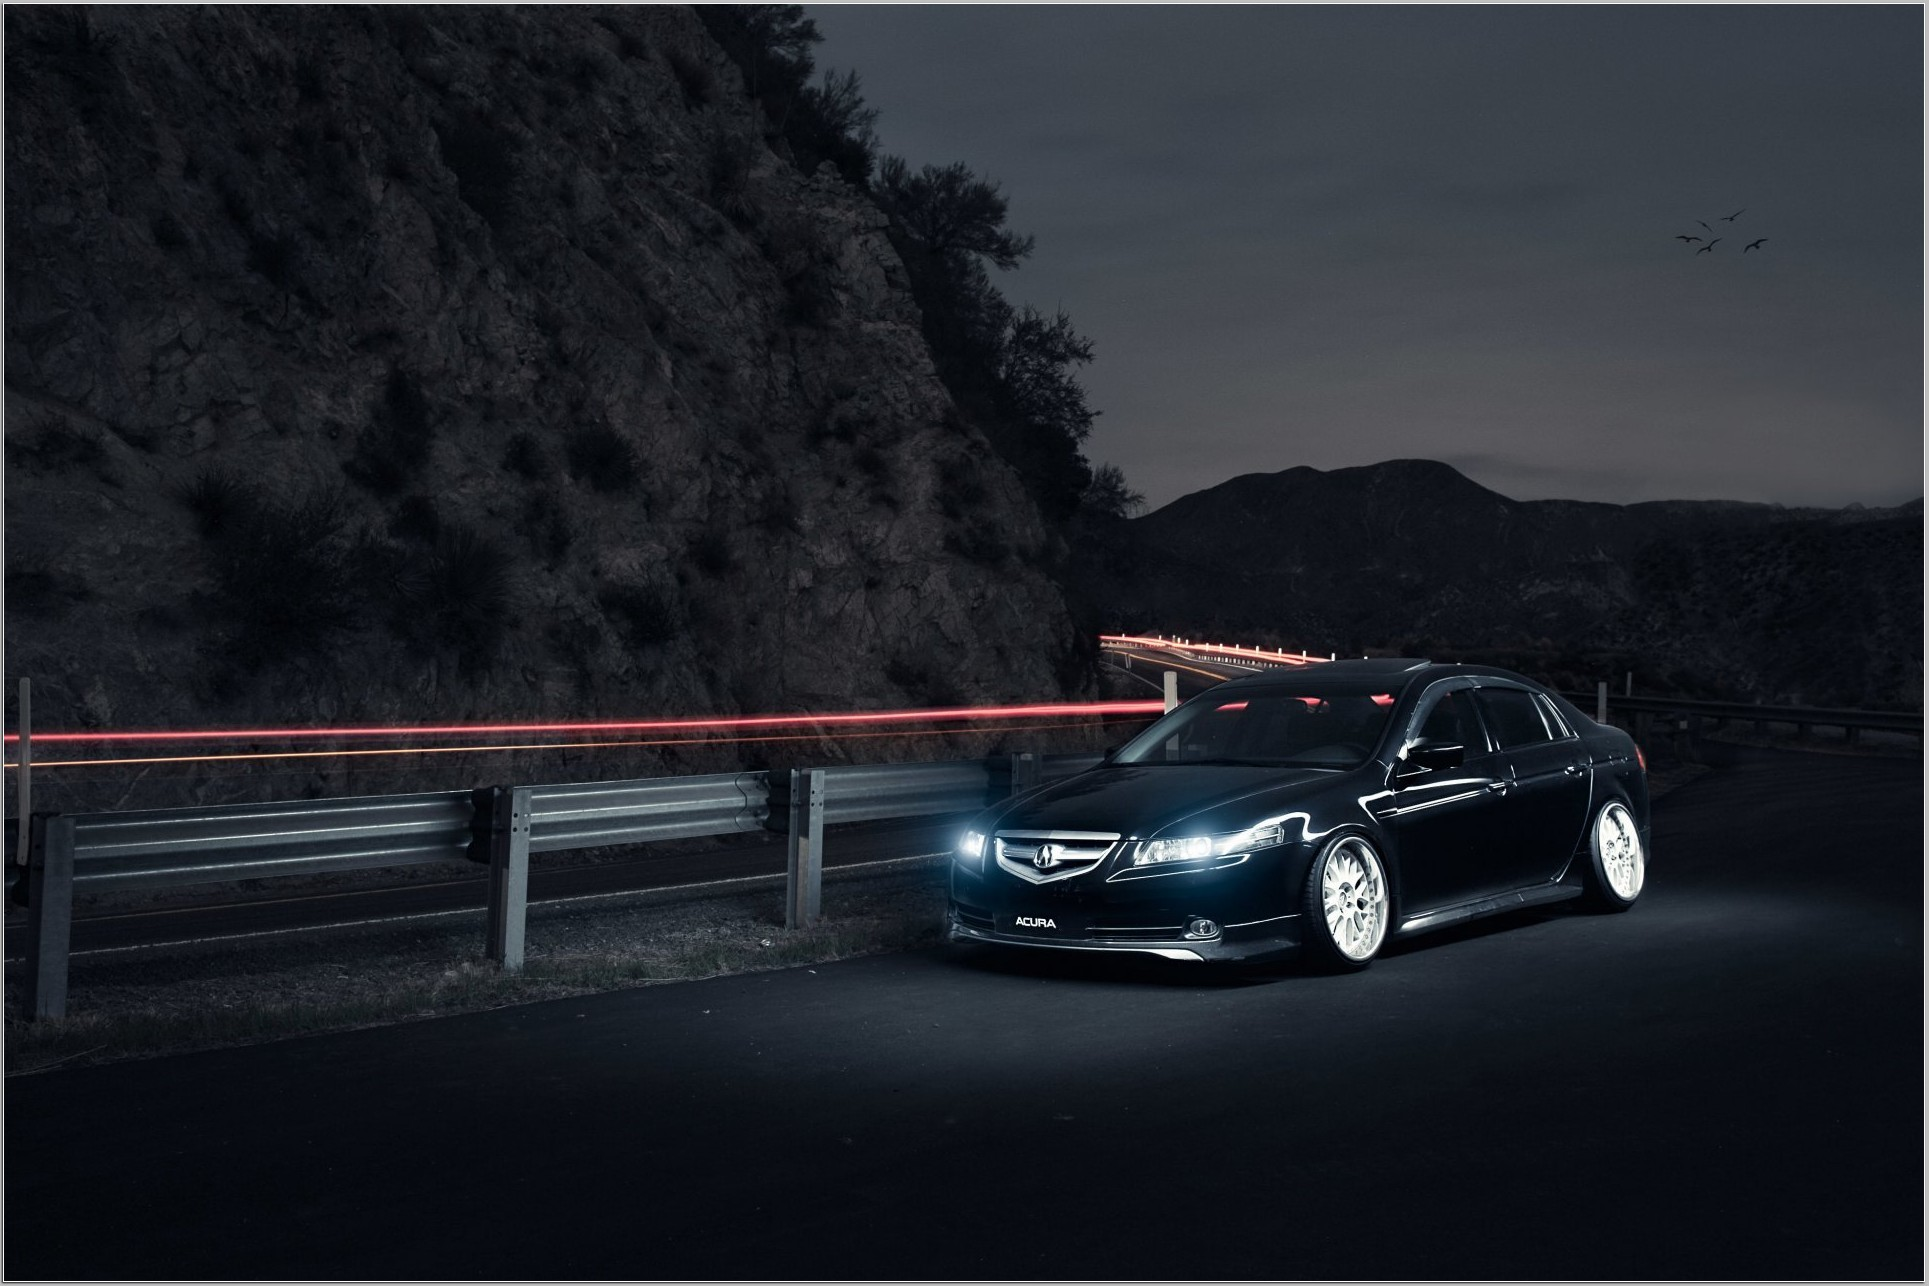 Acura TL Wallpapers T1EQAF4 WallpapersExpertcom 1929x1286